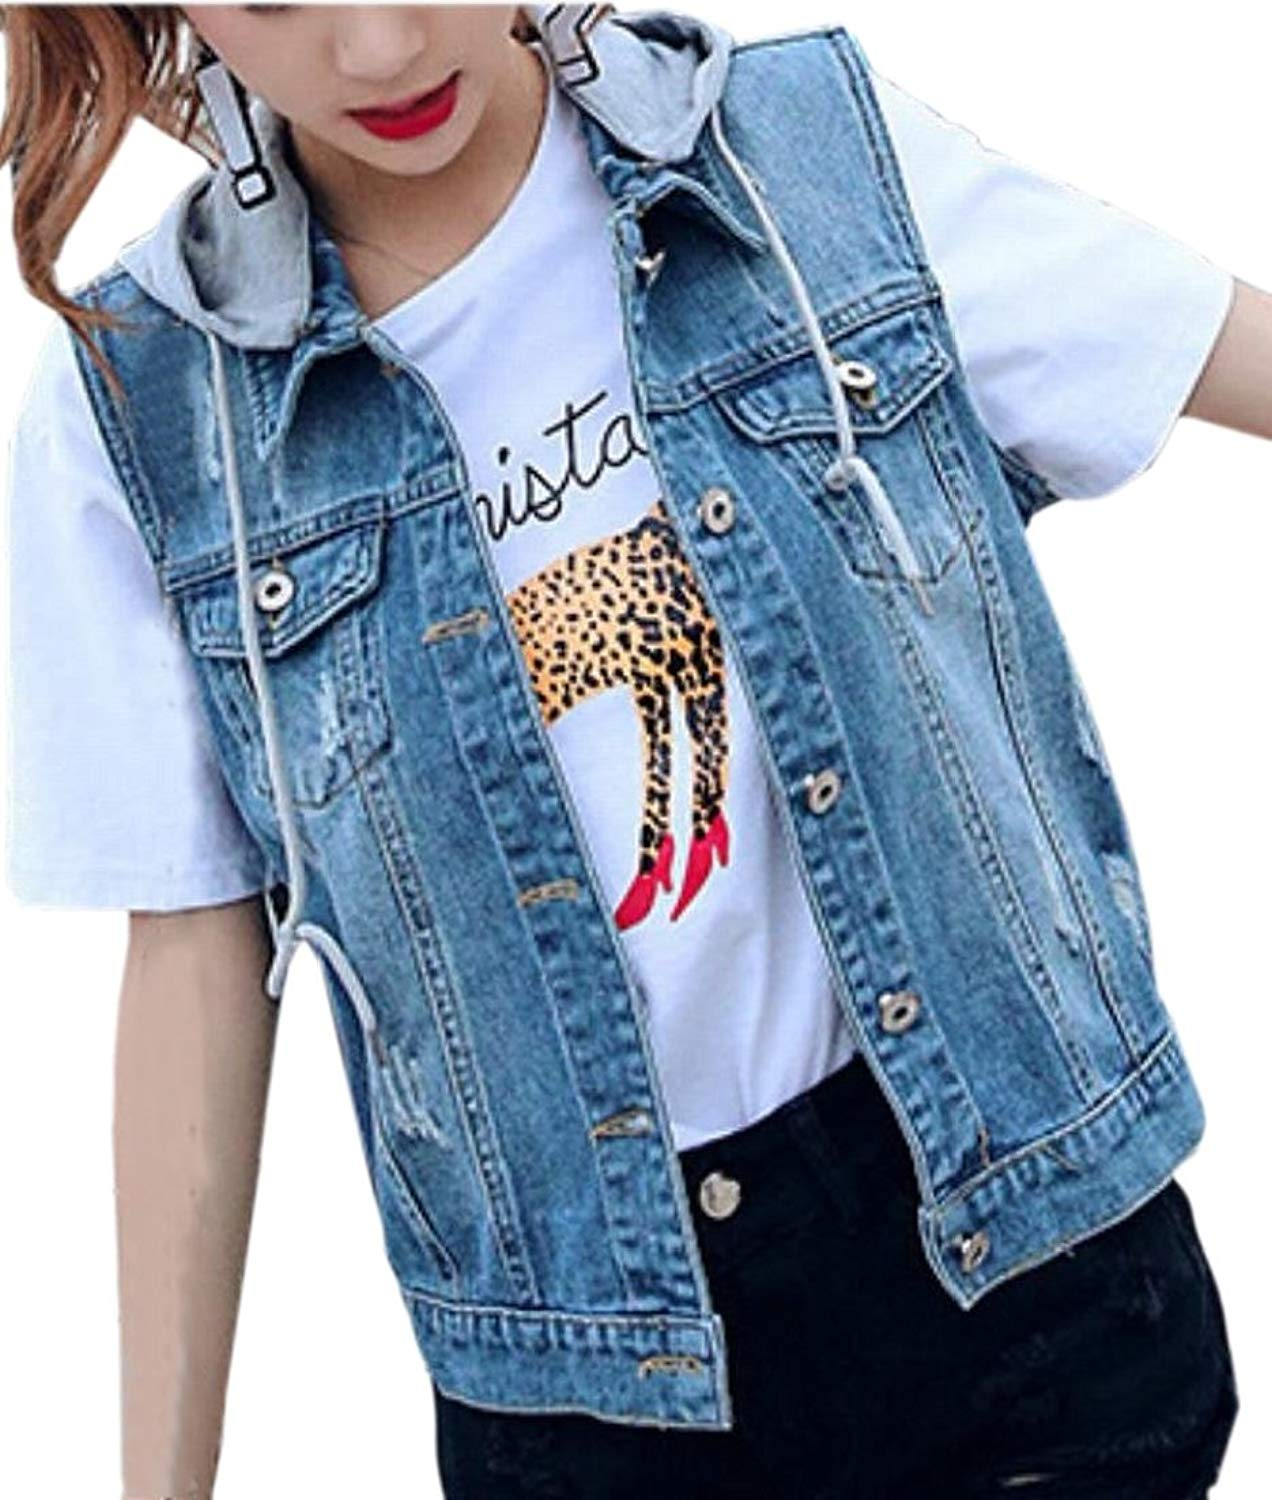 736a2f7bfd4f89 Get Quotations · Alion Jean Vest Womens Hooded Washed Denim Vest Sleeveless  Jacket